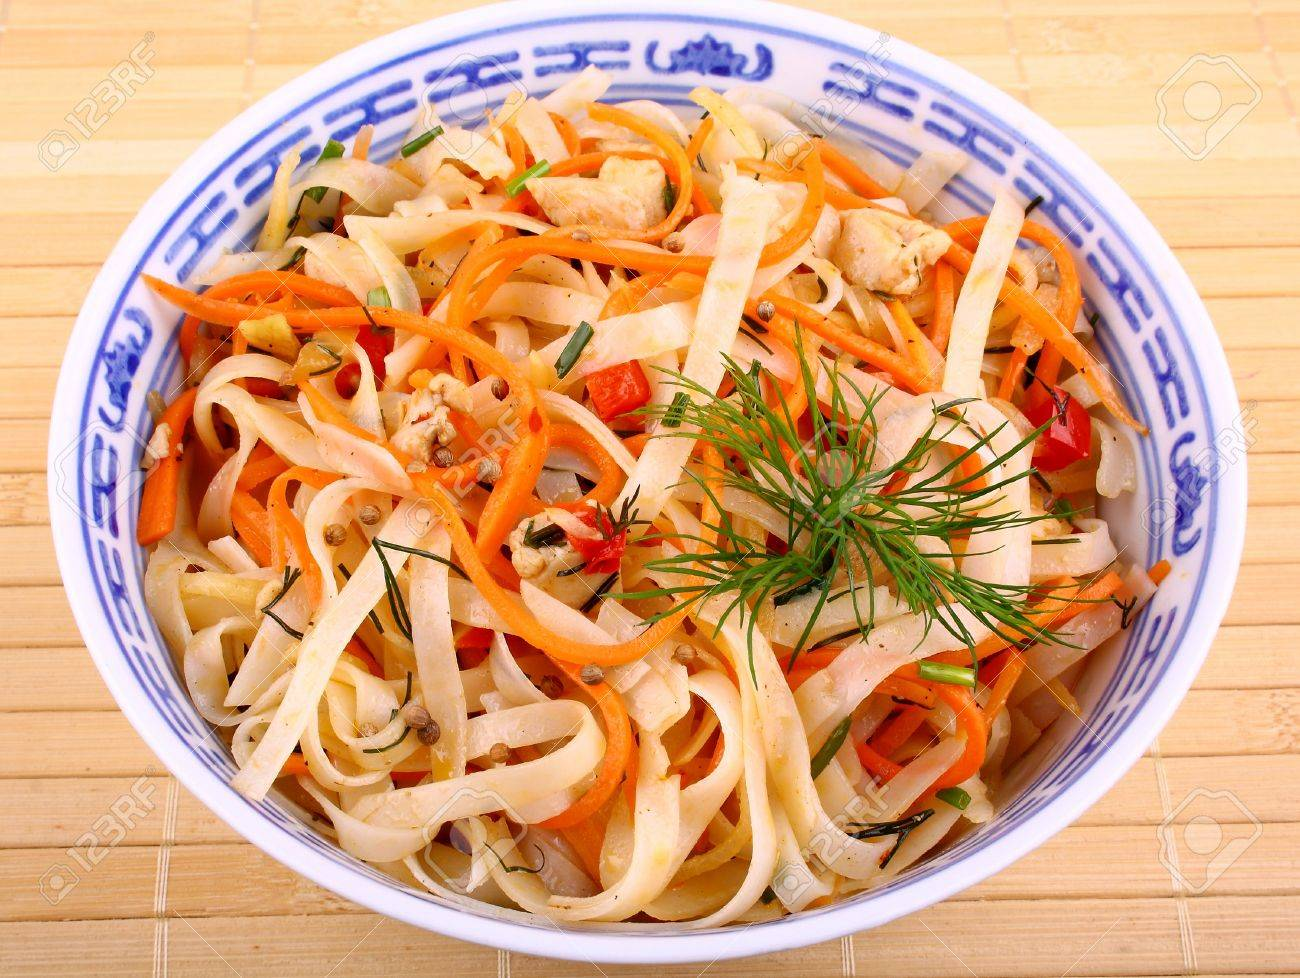 Band than Asian rice noodle salad with chicken meat and carrots Stock Photo - 18702504